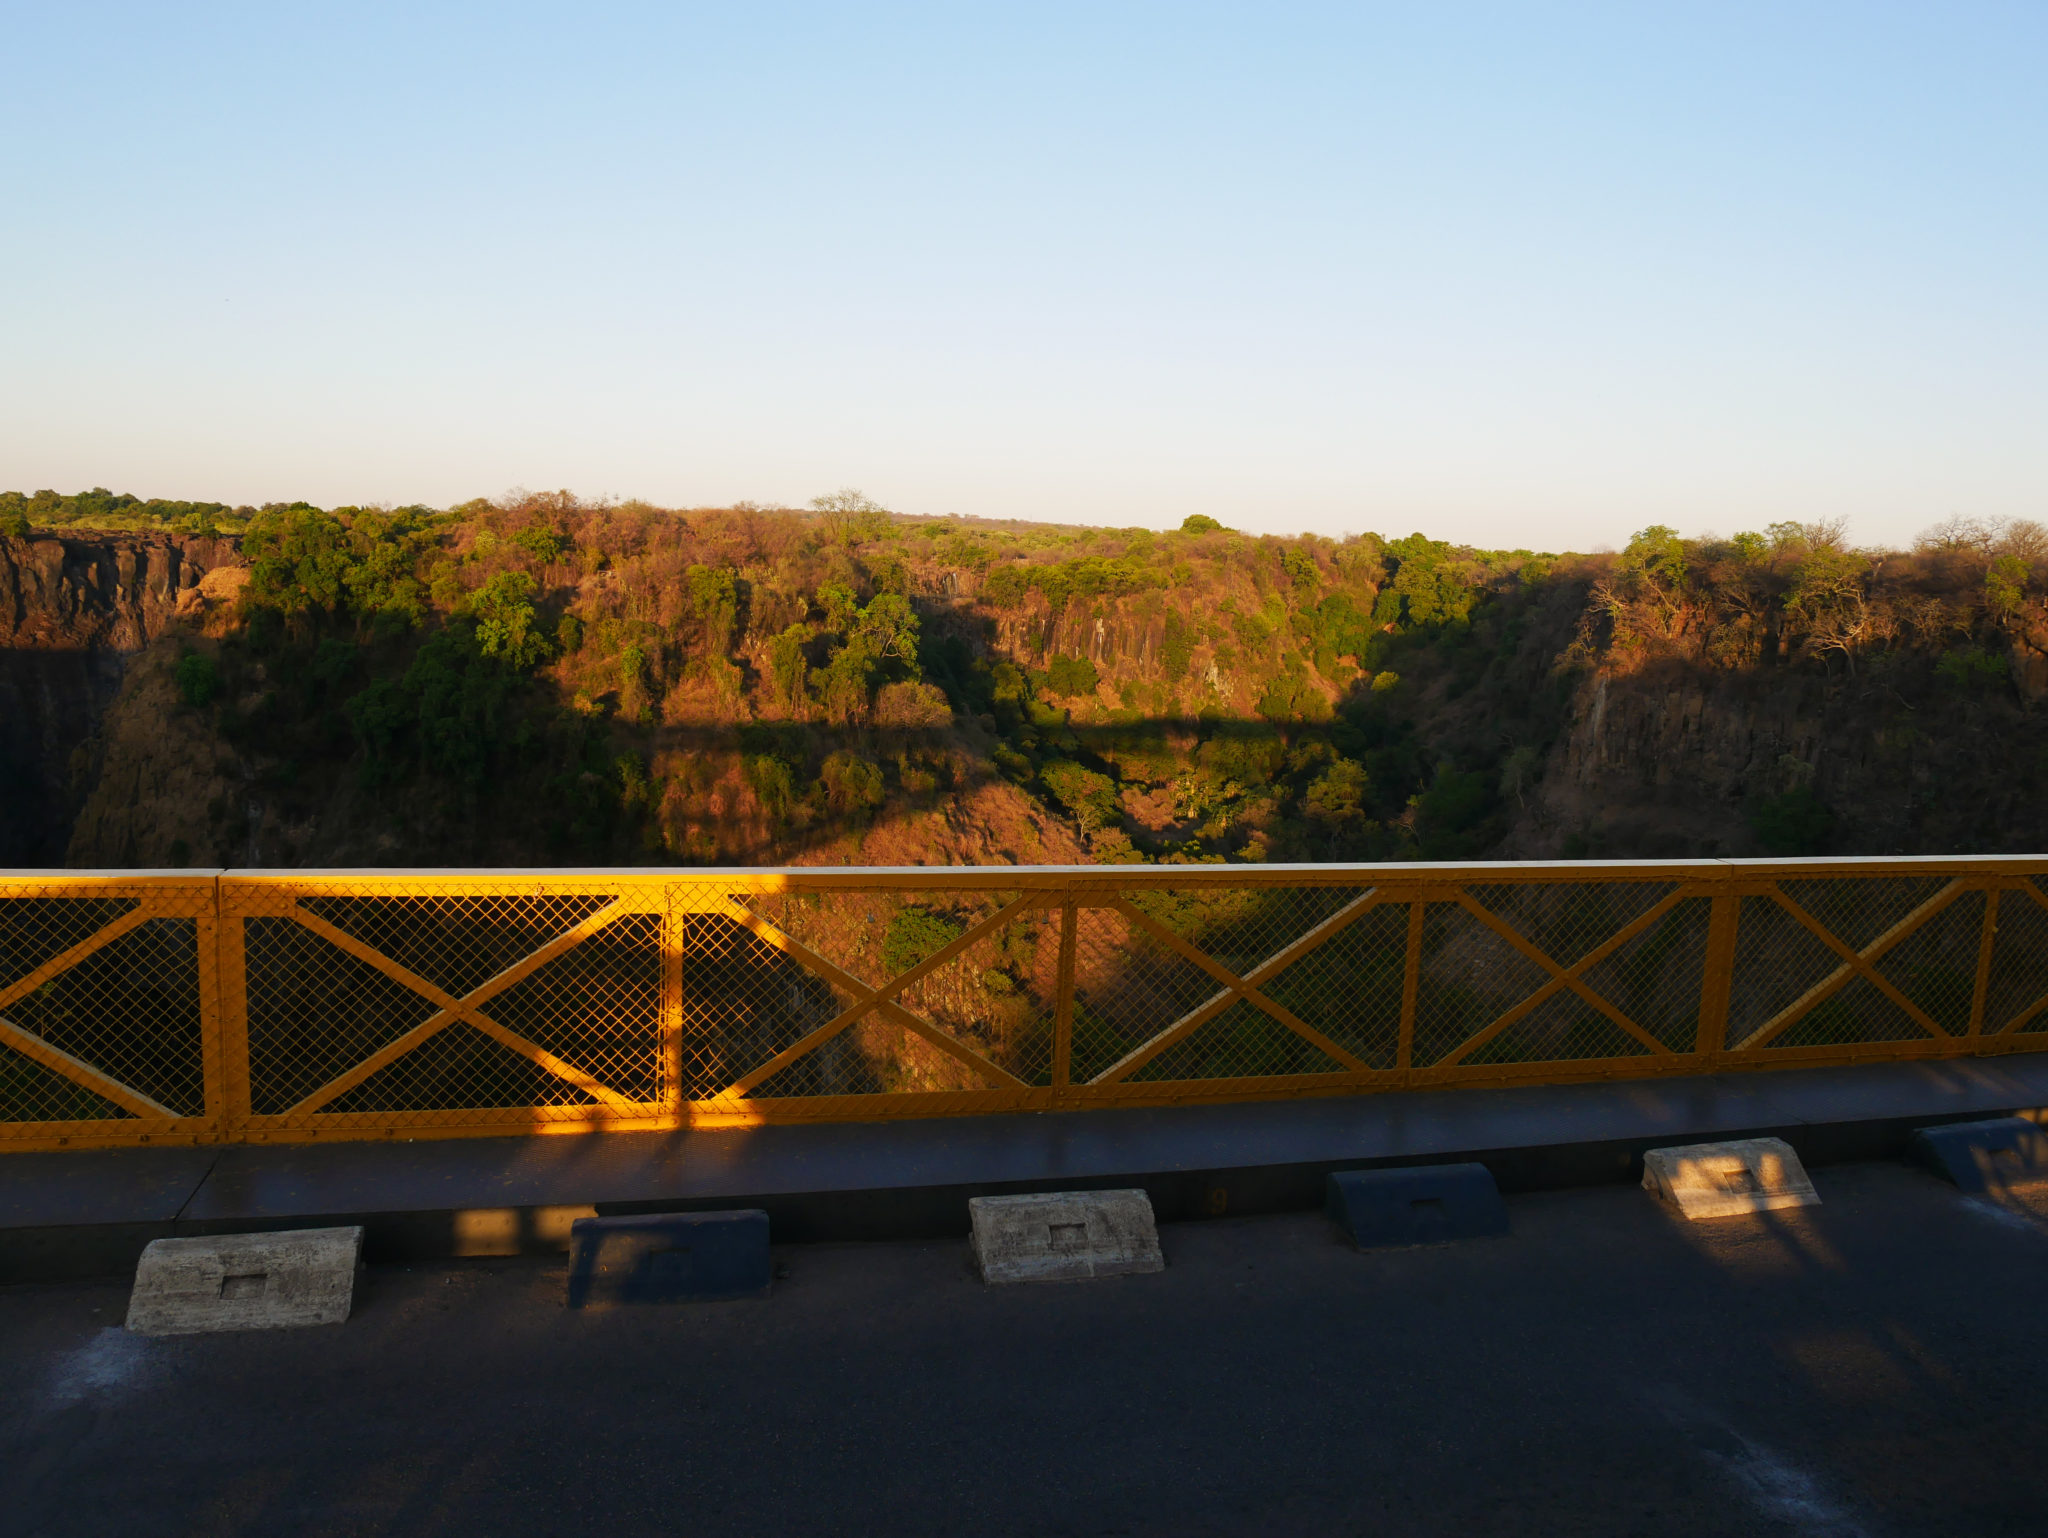 The setting sun casts a shadow of the Victoria Falls Bridge on the gorge